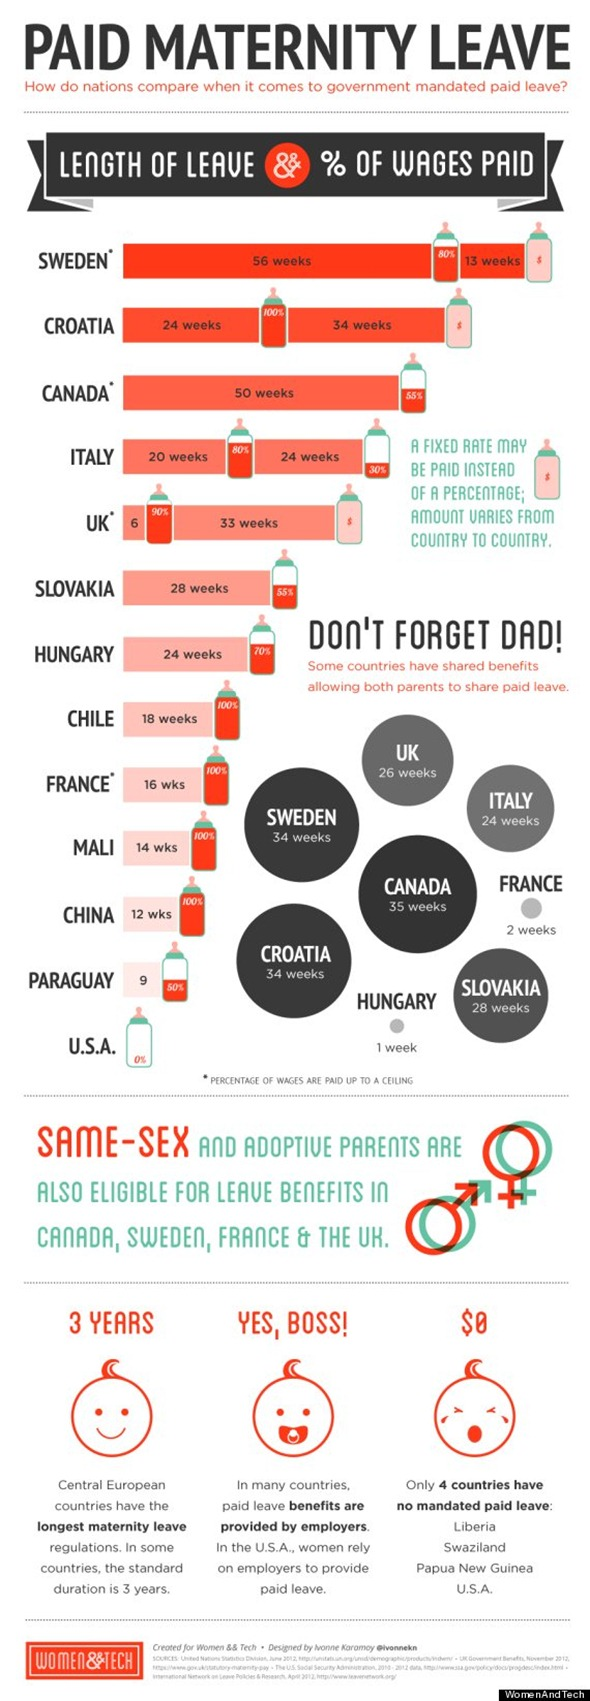 o-MATERNITY-LEAVE-INFOGRAPHIC-570